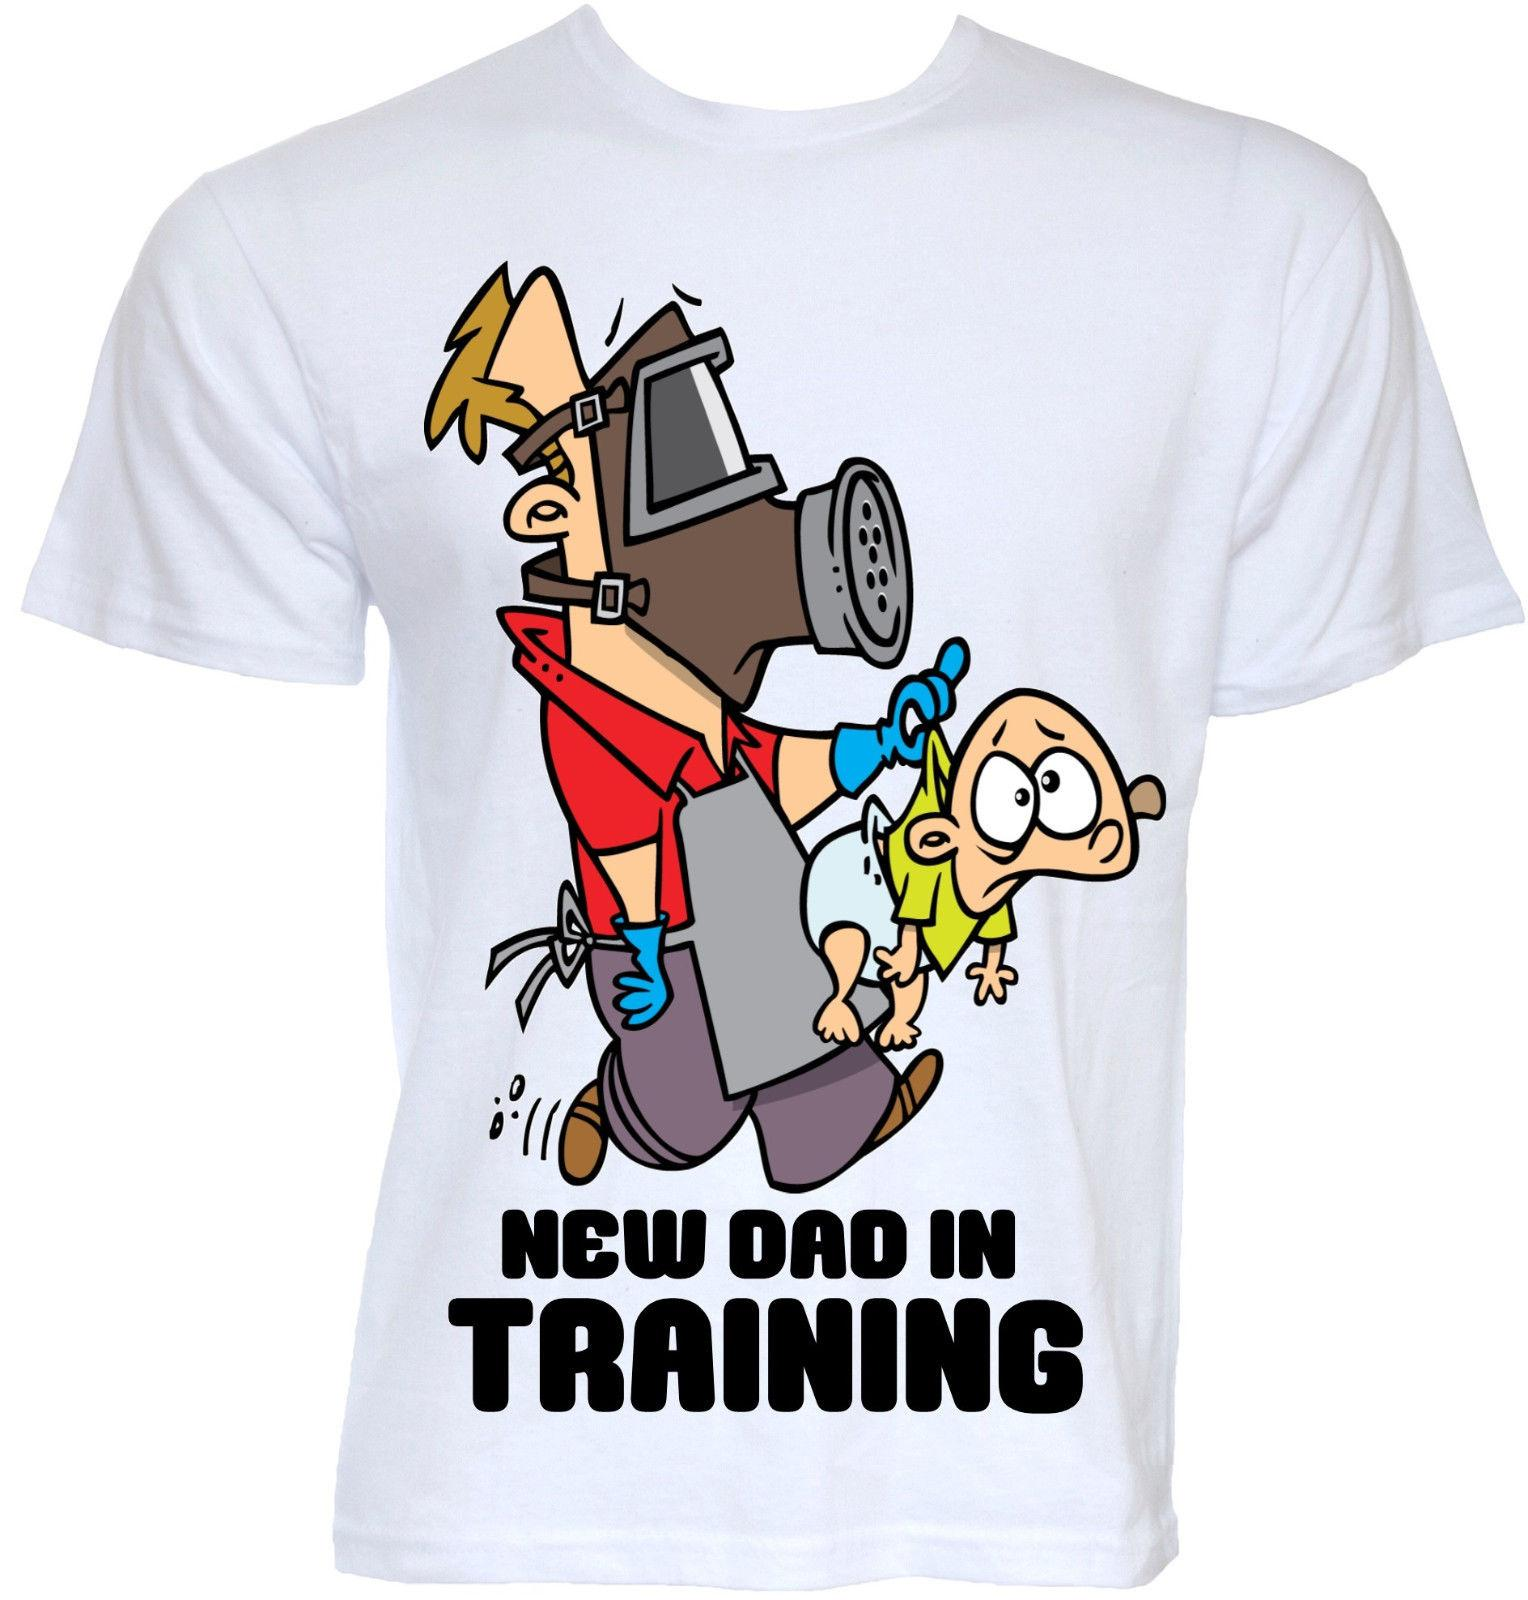 Mens Funny Cool Novelty New Daddy Dad T Shirts Baby Shower Gifts